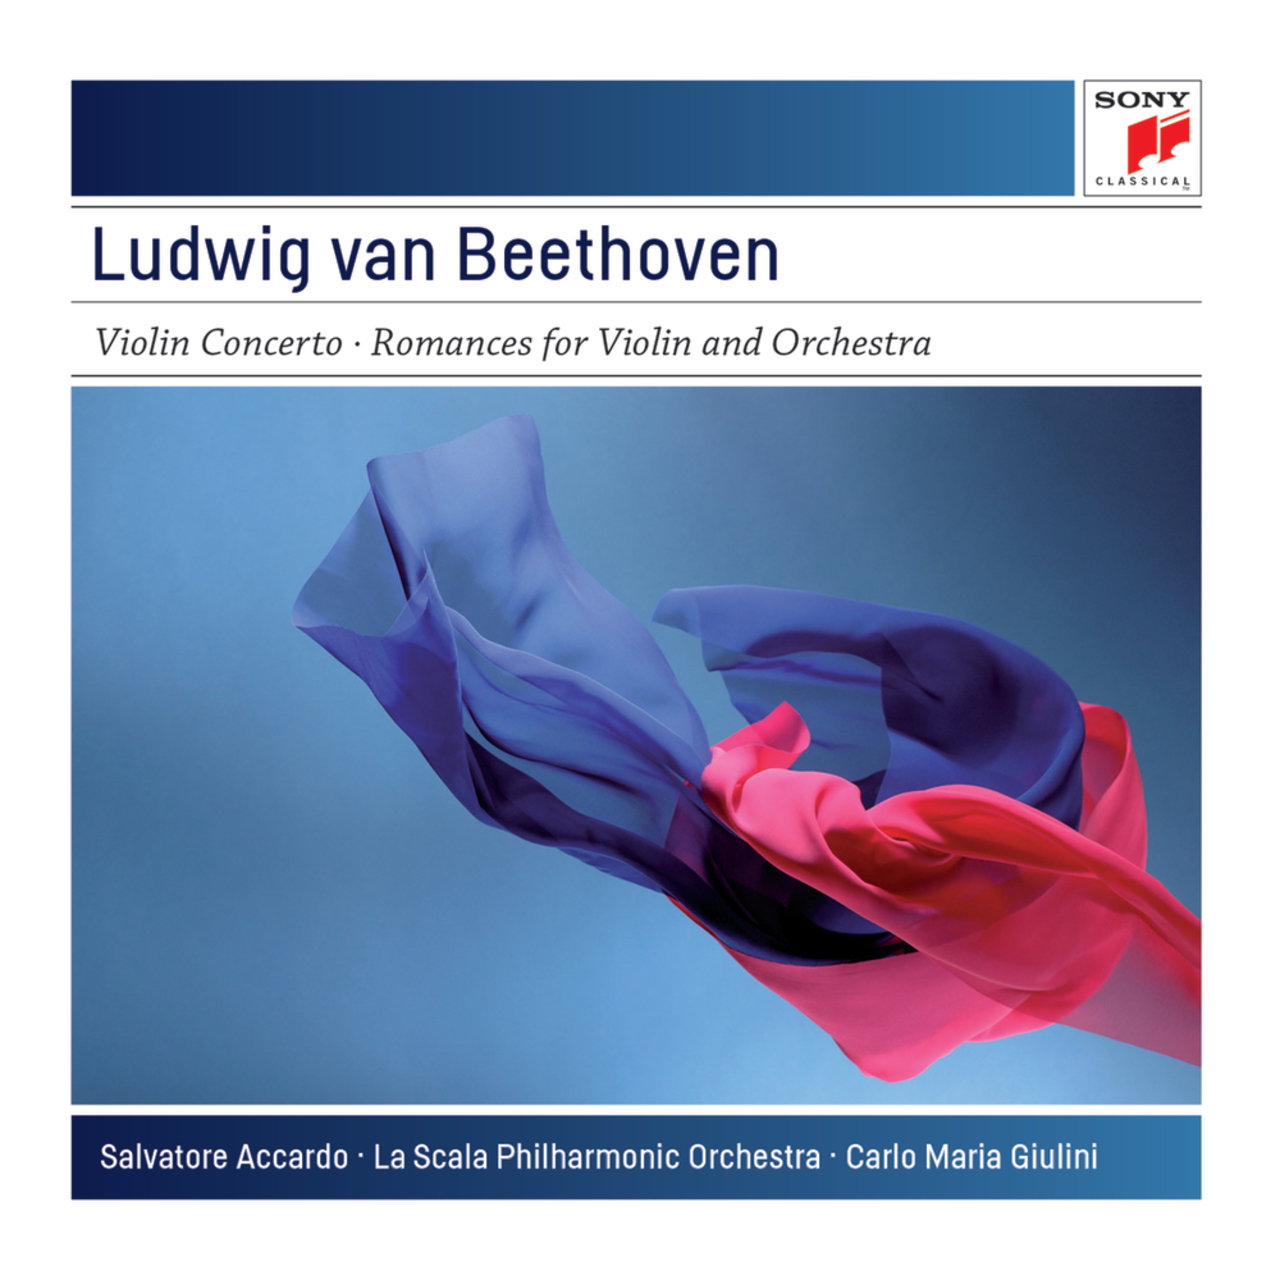 Beethoven: Violin Concerto in D Major, Op. 61; Romances for Violin No. 1 in G Major, Op. 40 & No. 2 in F Major, Op. 50